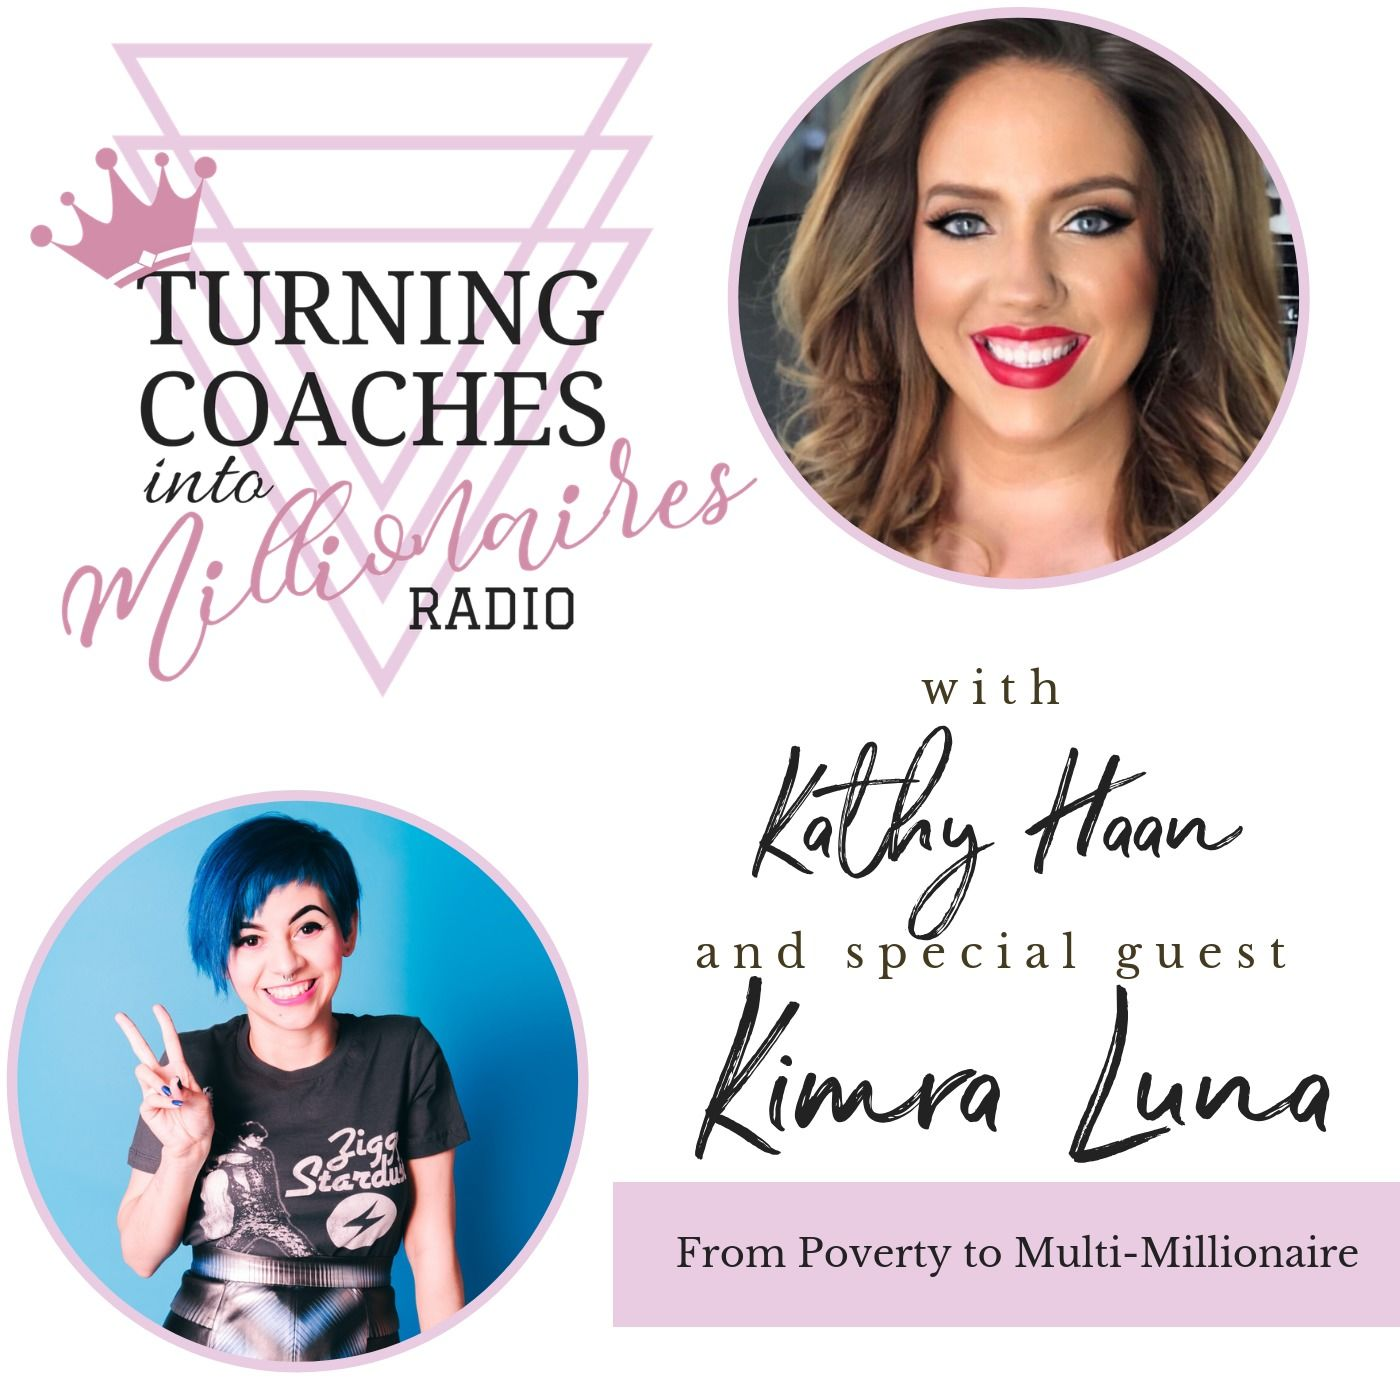 Kimra Luna On Going from Poverty to Multi-Millionaire